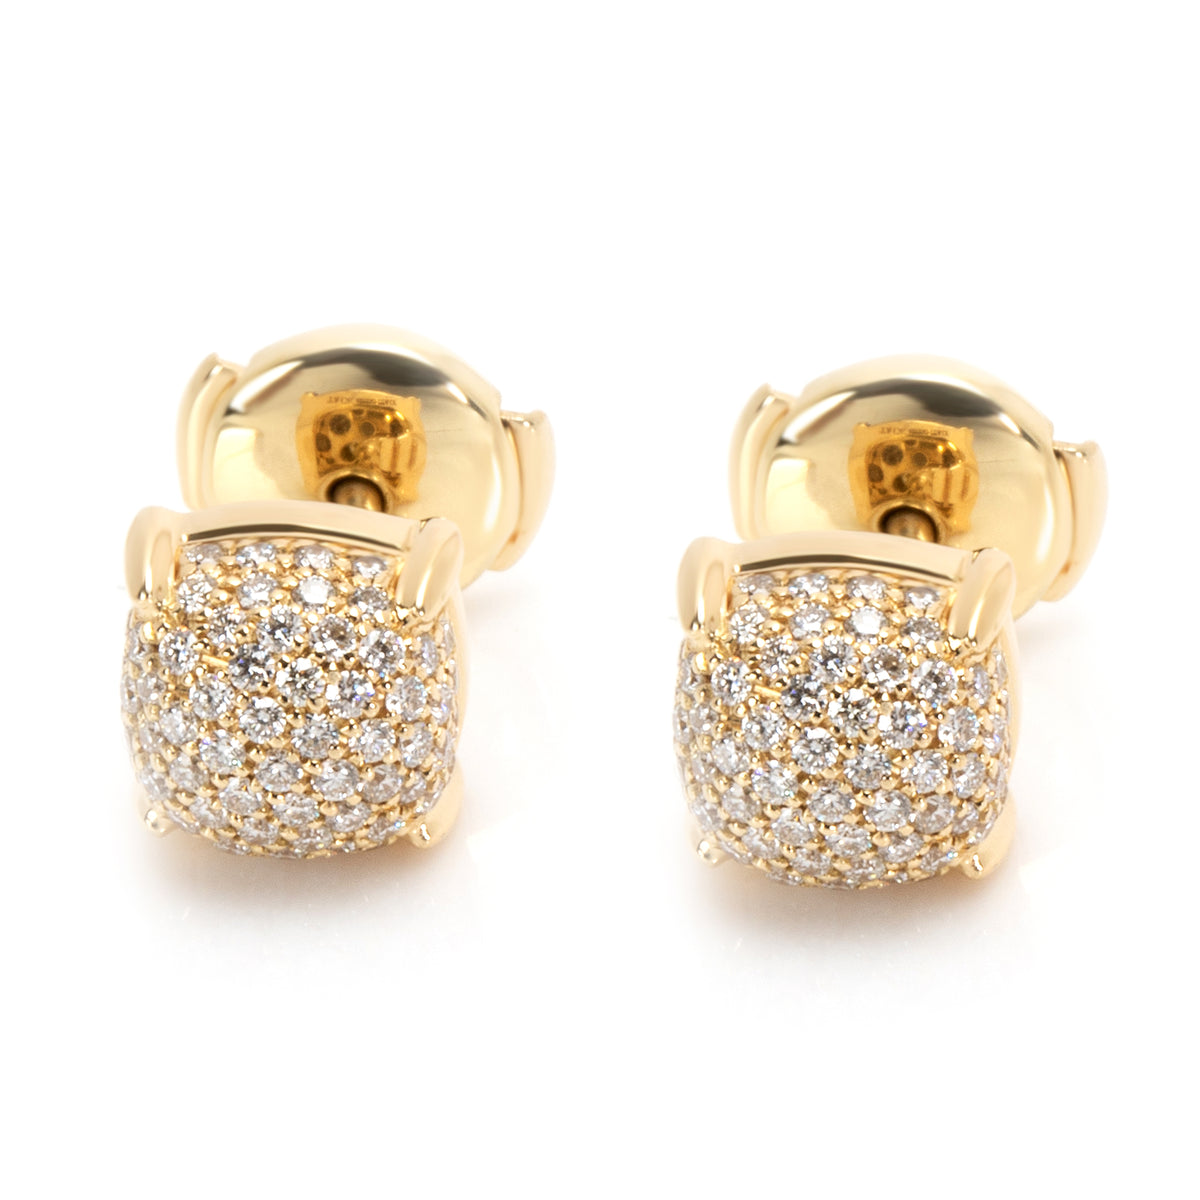 Tiffany & Co. Paloma Picasso Sugar Stacks Diamond Earrings in 18K Yellow Gold